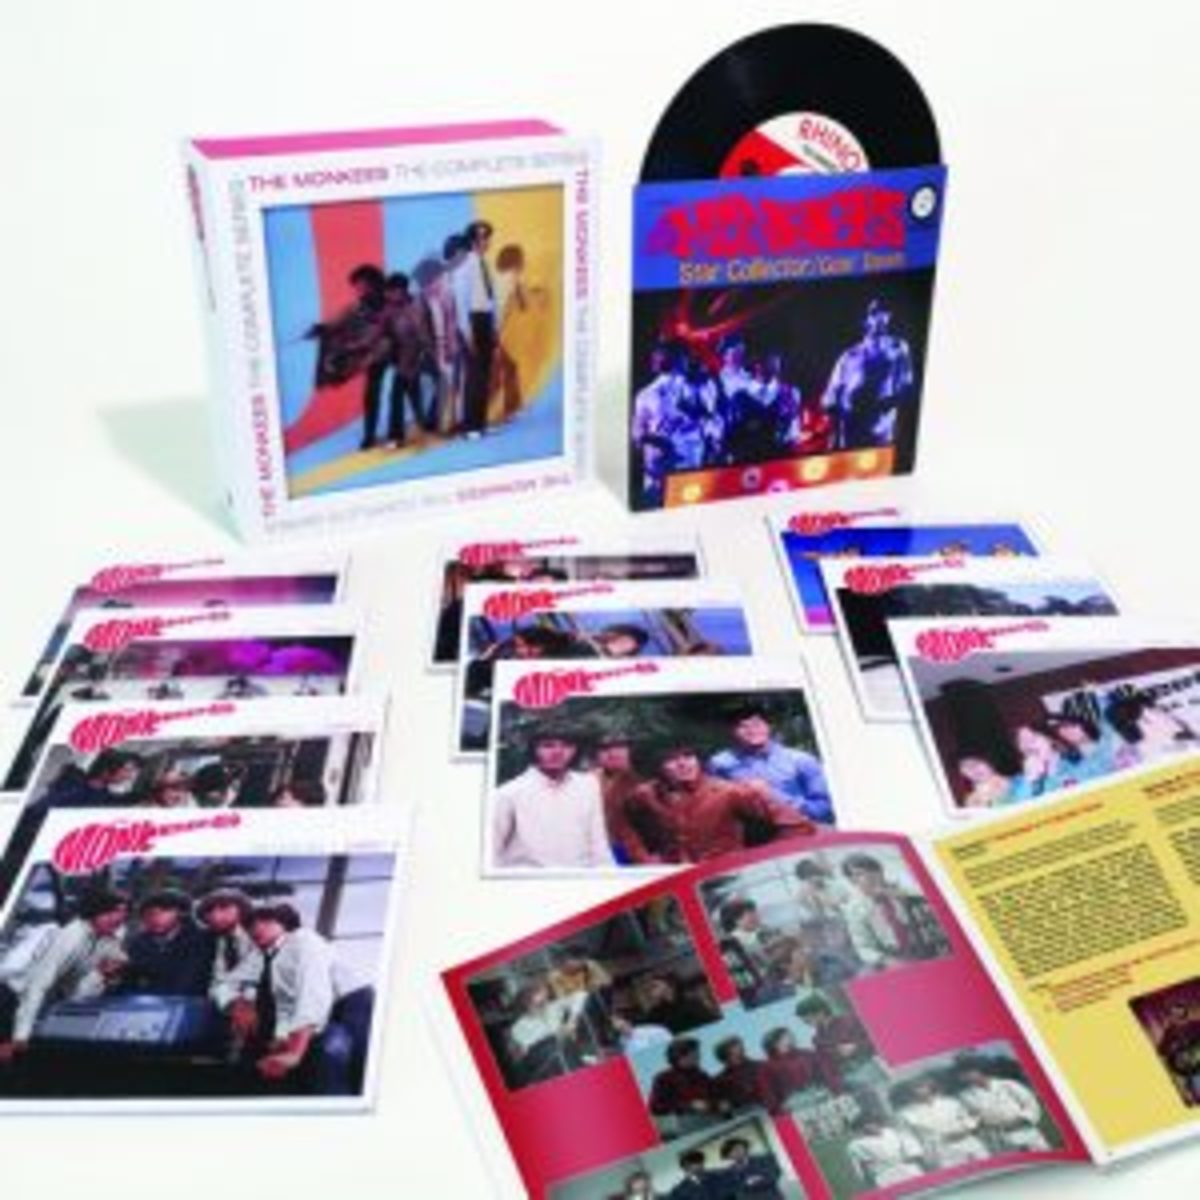 Monkees complete TV series box set.